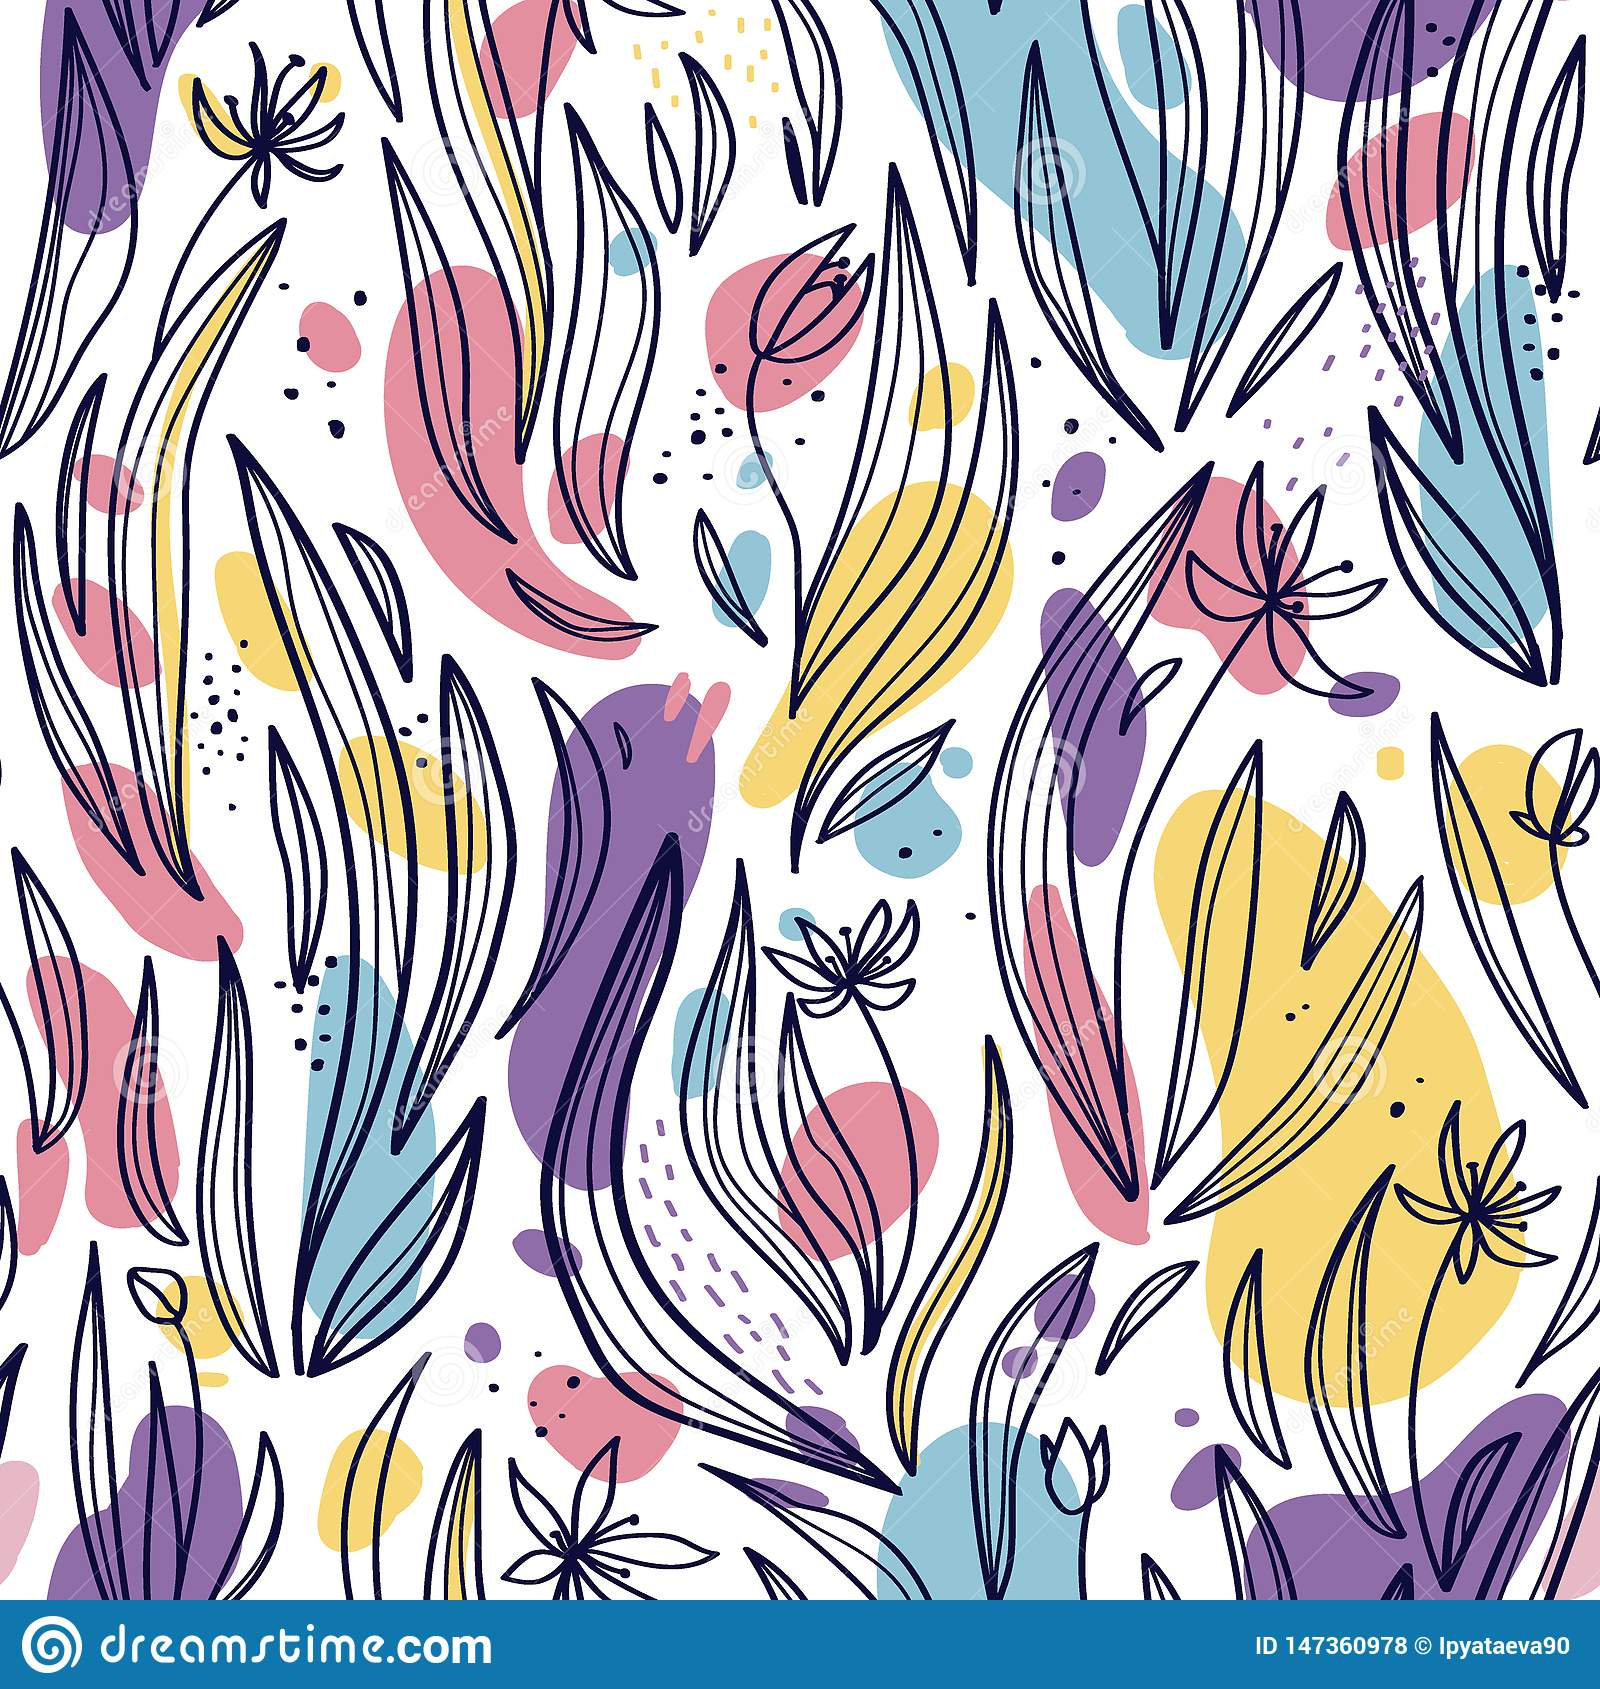 Seamless pattern of abstract leaves, flowers and spots on a white background